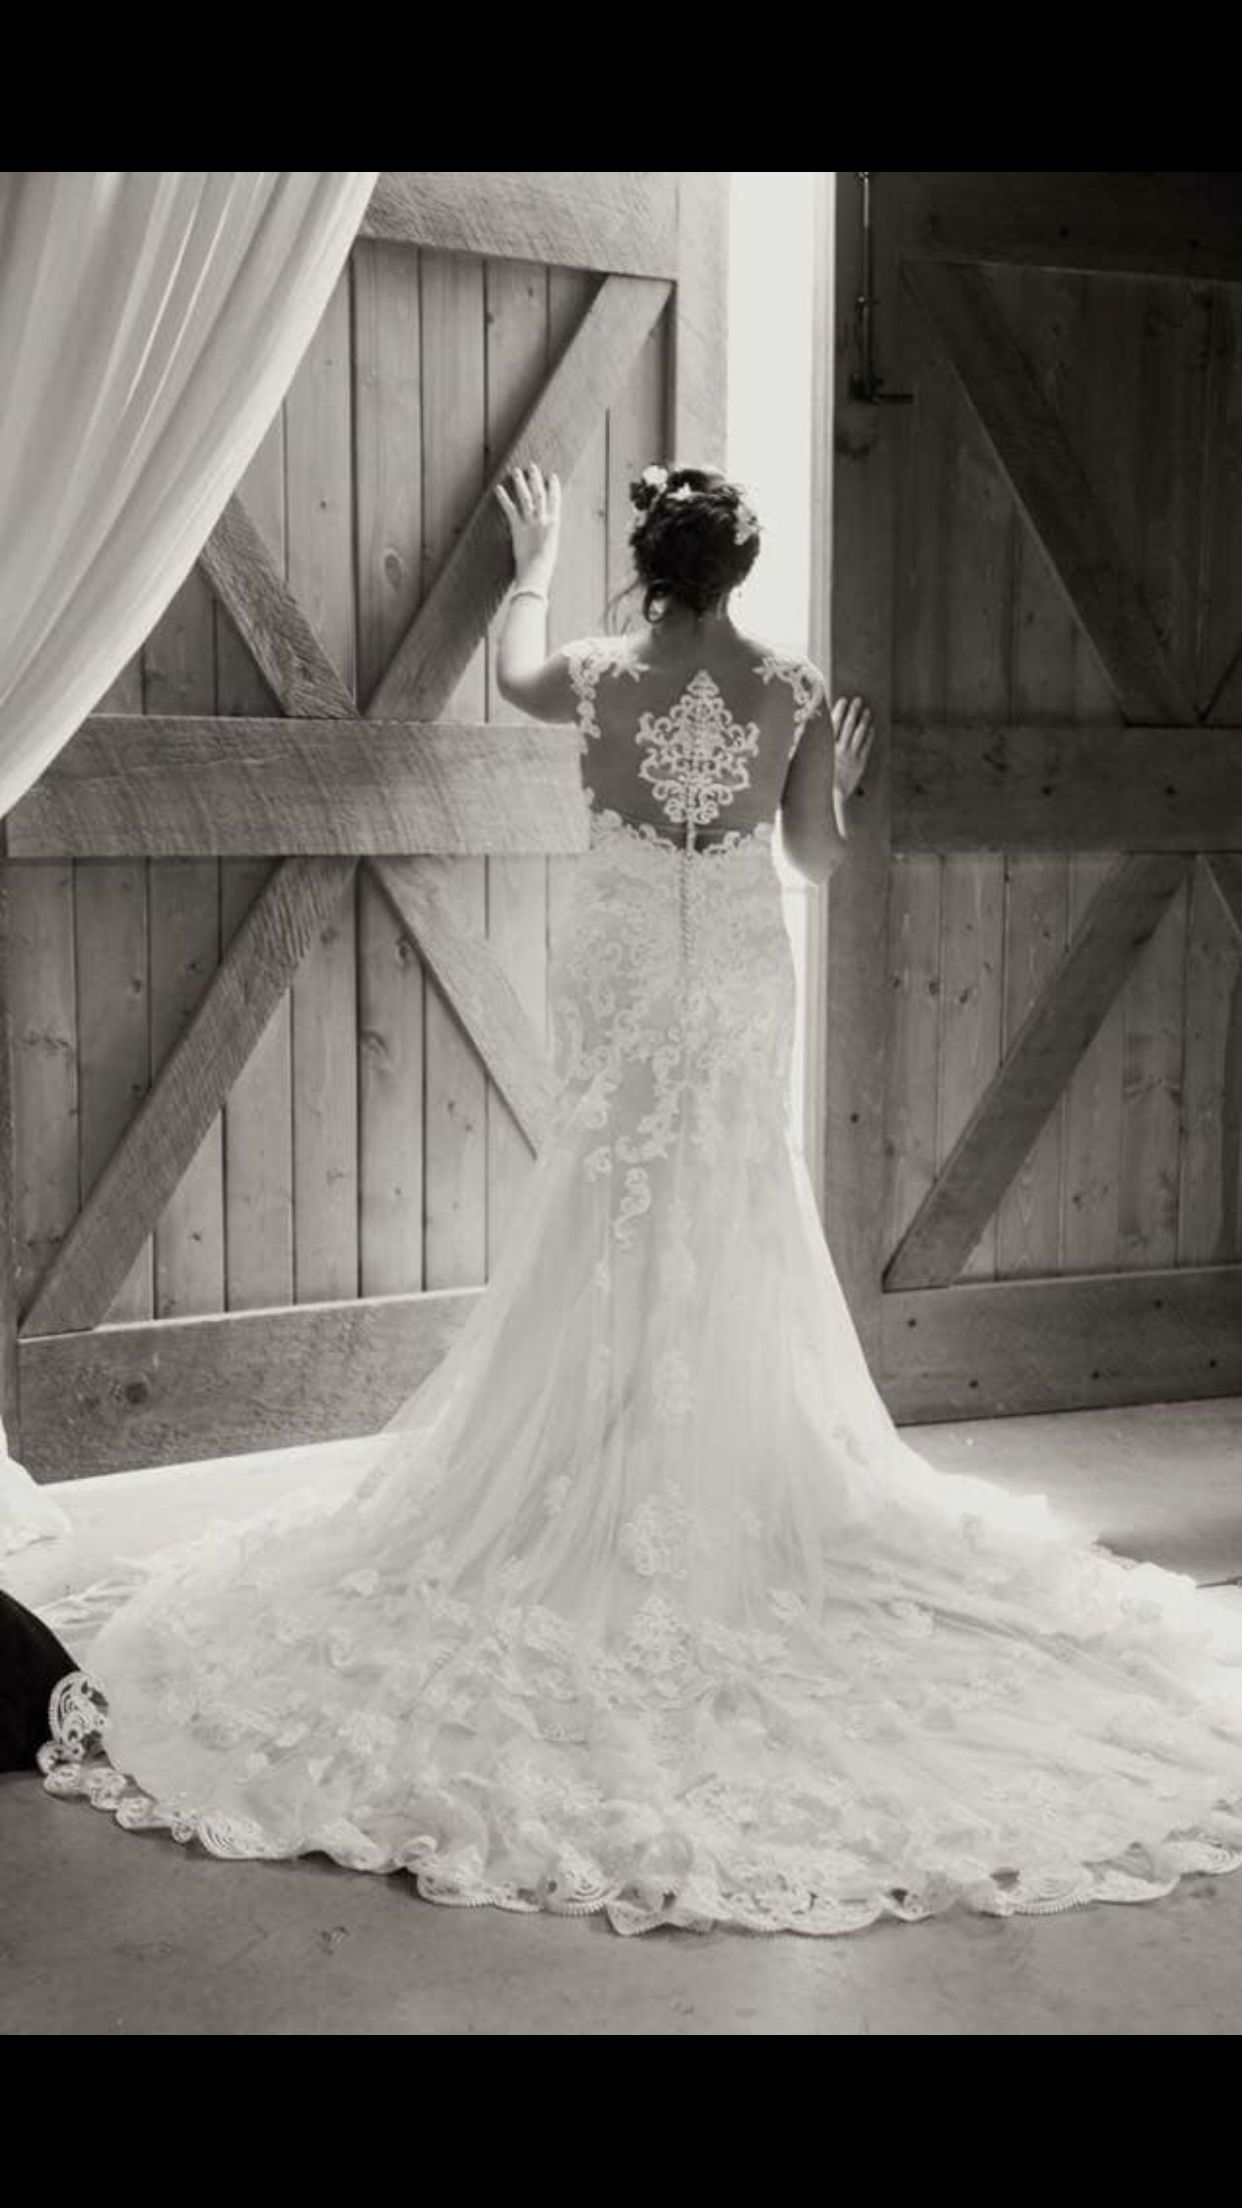 Happily Ever After at The Barn wedding venue Knoxville TN ...